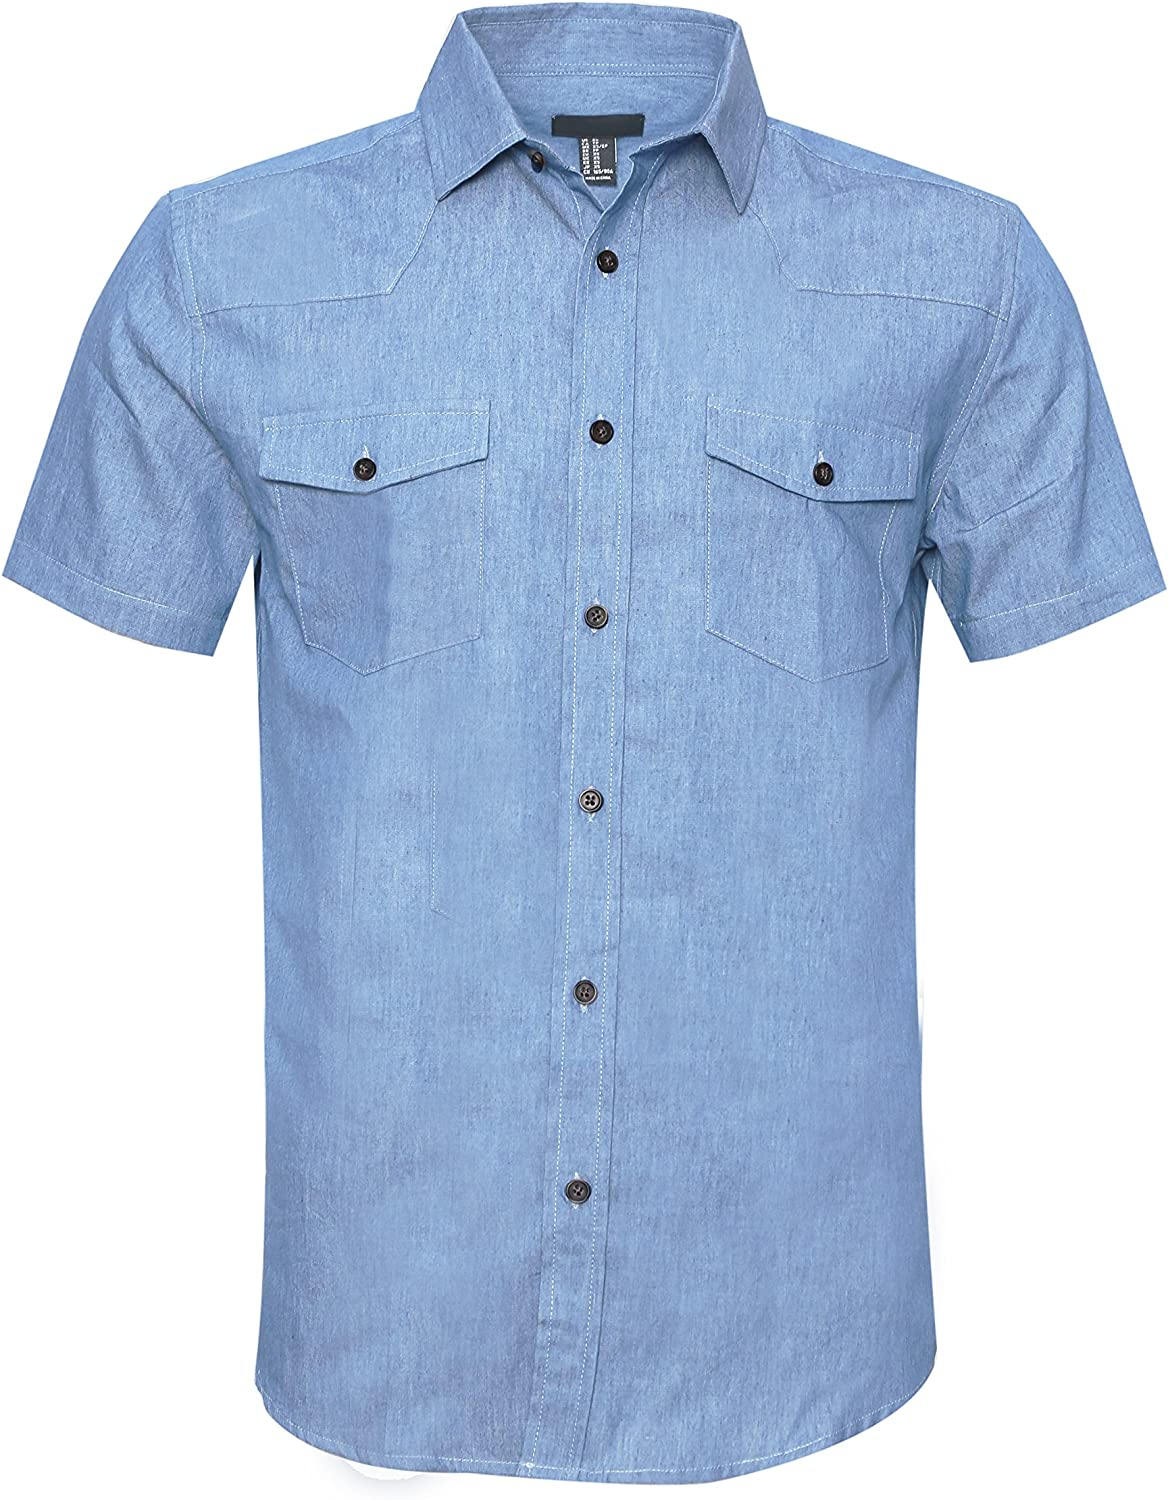 AVANZADA Mens Big /& Tall Fort Short Sleeve Denim Shirt Lightweight Chambray ButtonDark Blue